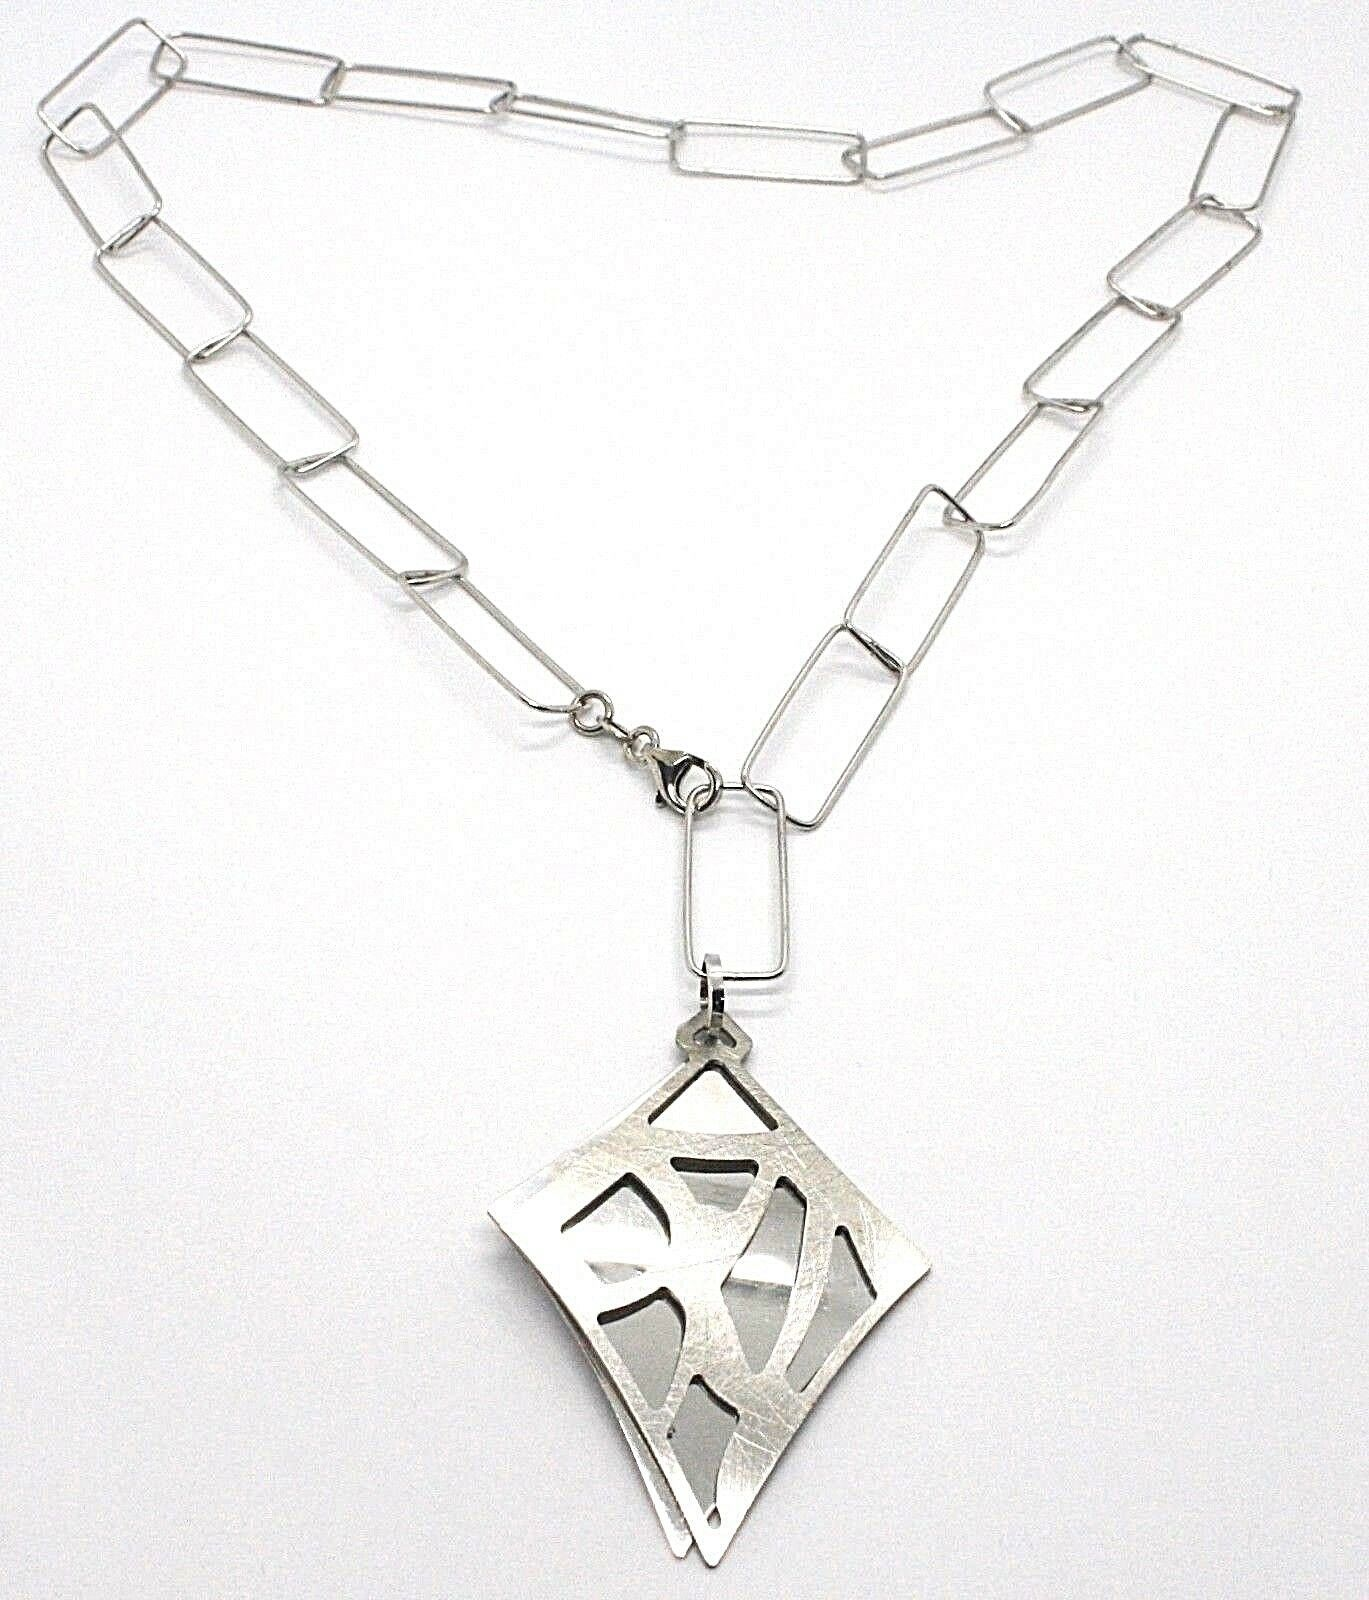 SILVER 925 NECKLACE, CHAIN RECTANGULAR, DOUBLE RHOMBUS OVERLAID, SATIN